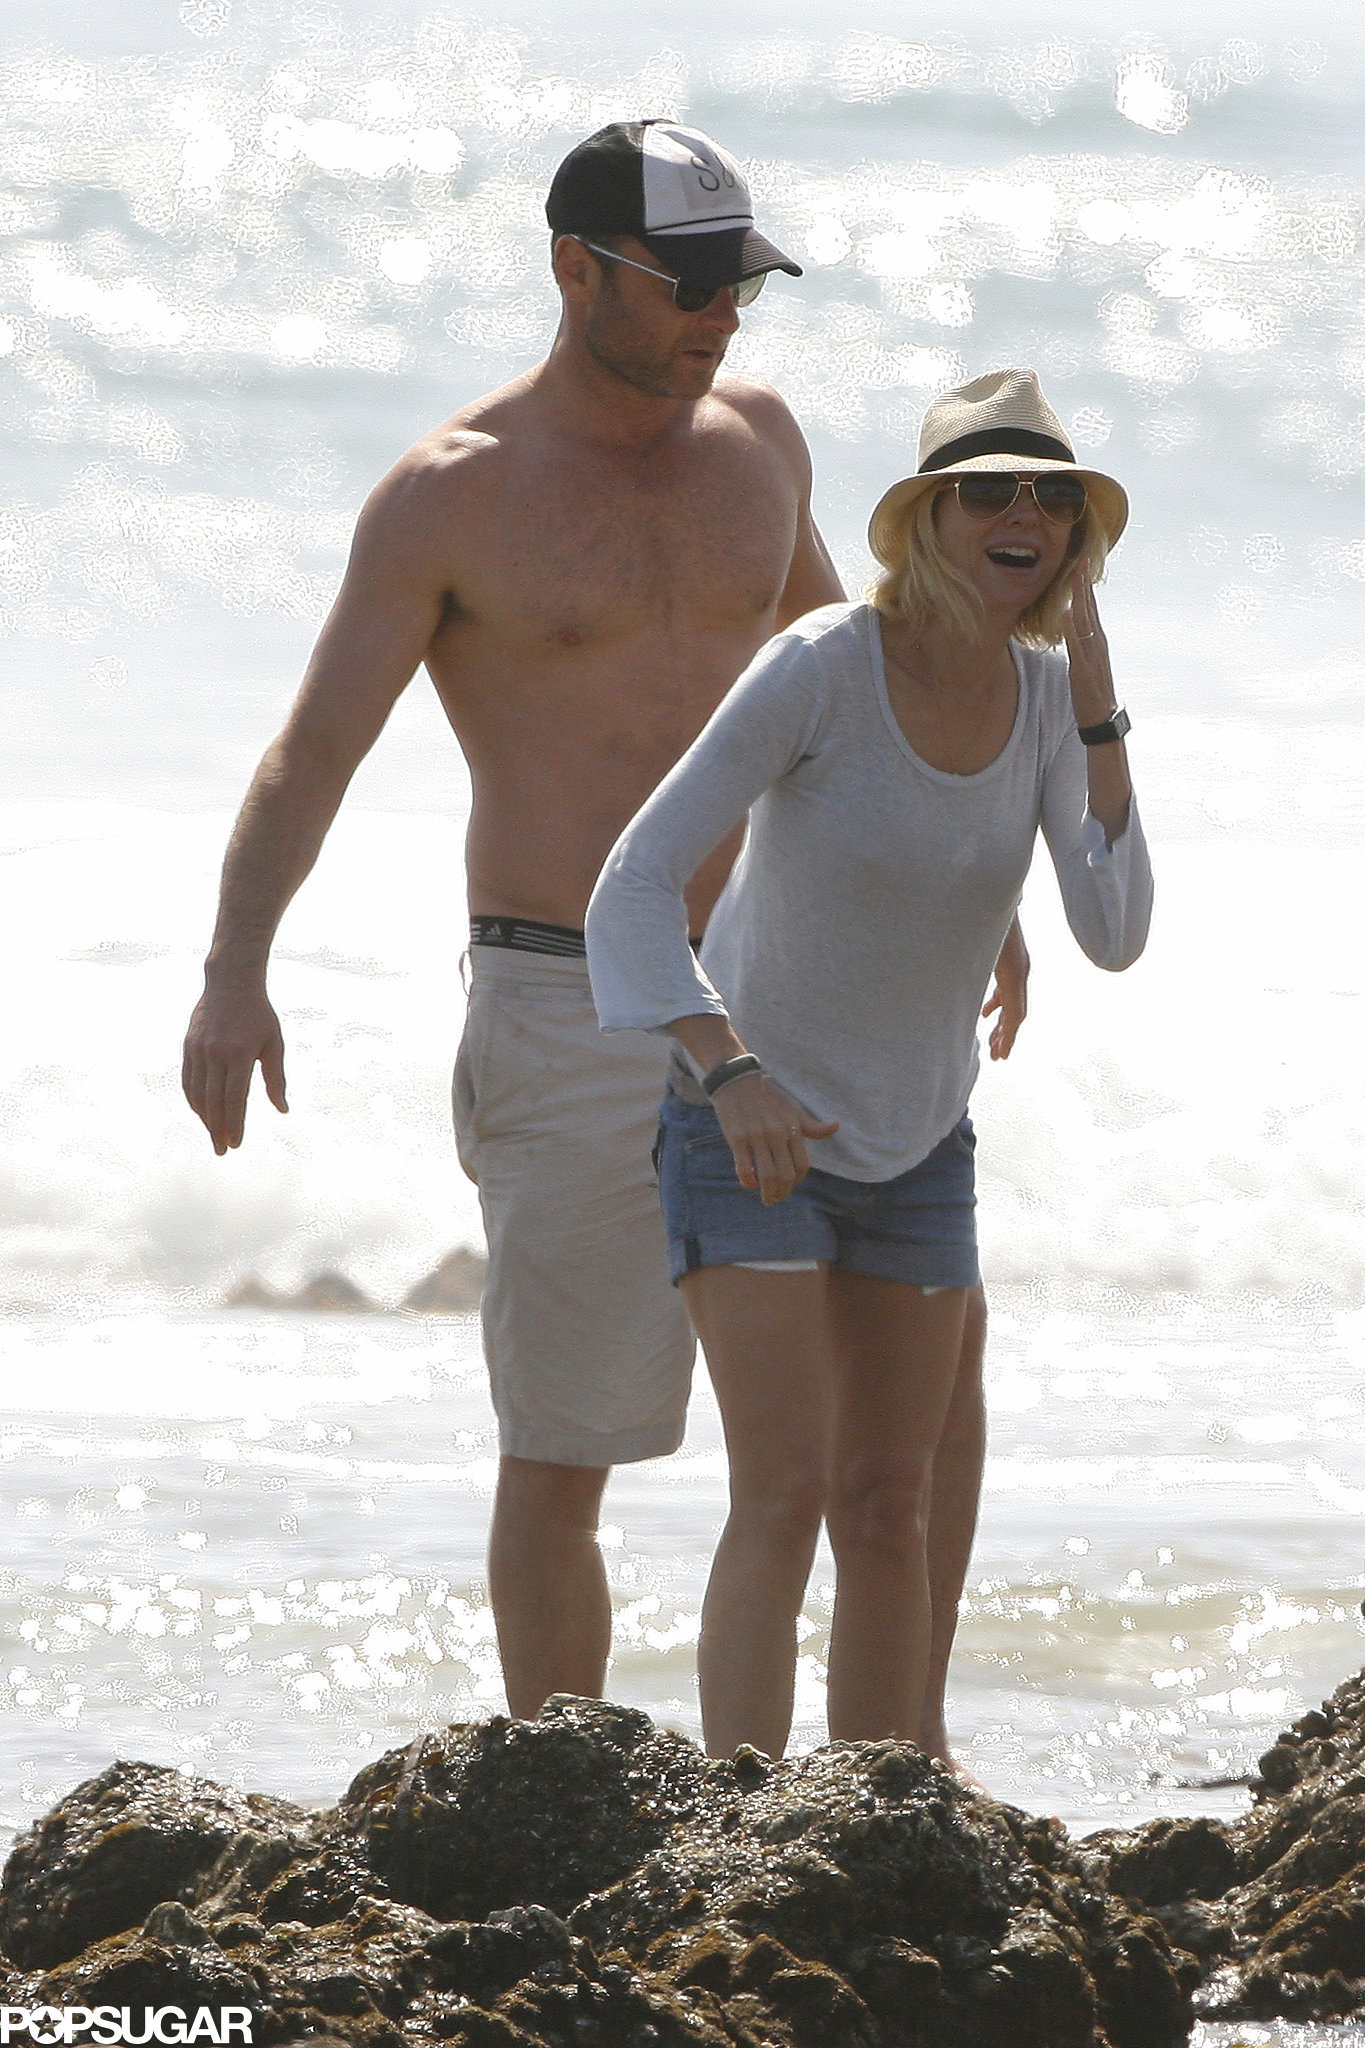 Naomi Watts and Liev Schreiber had a laugh while on the beach in Malibu in March 2013.